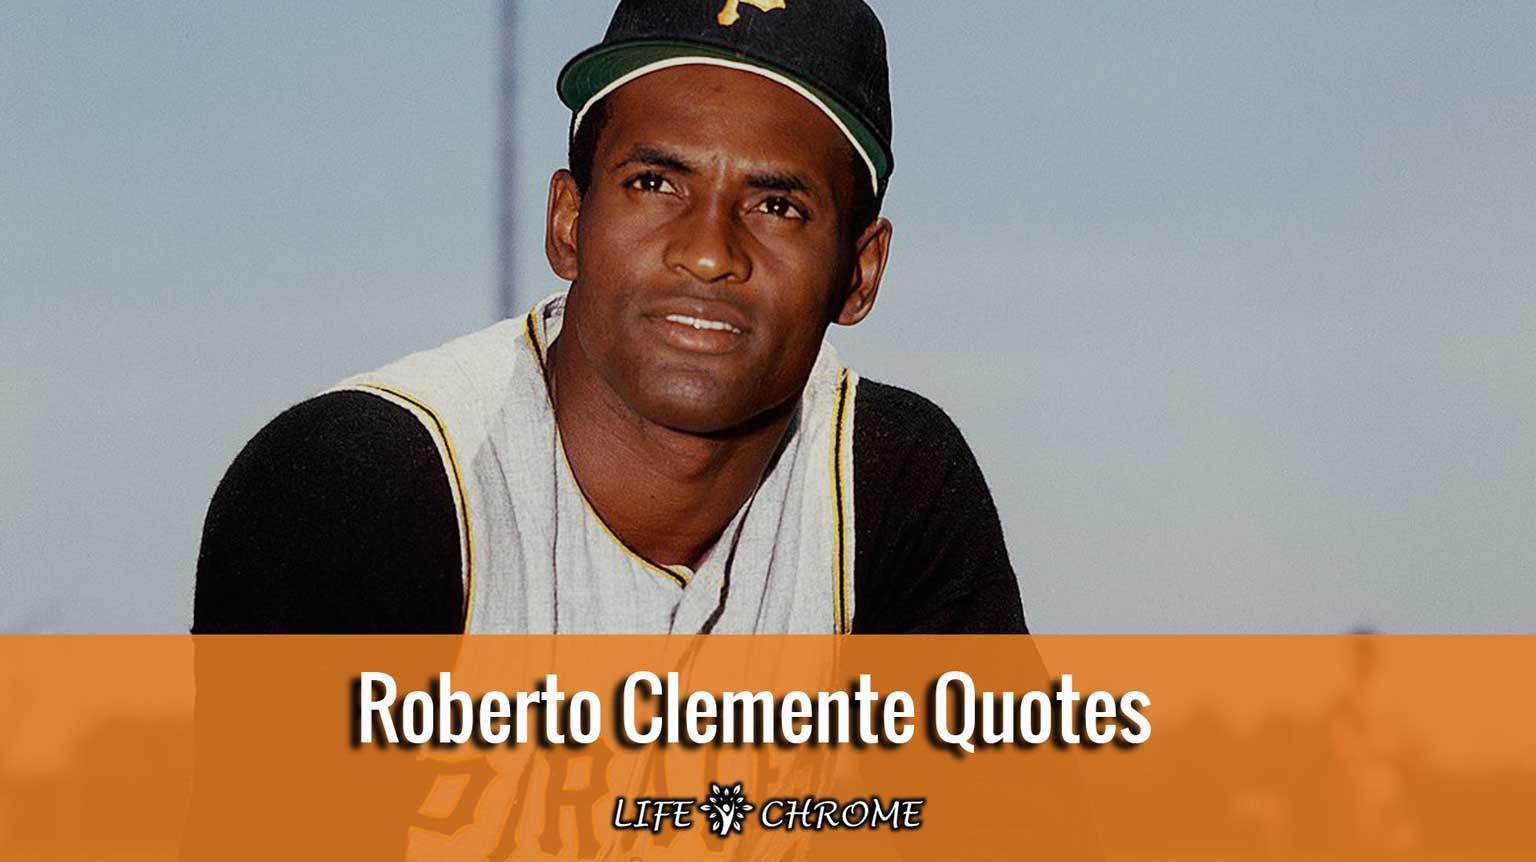 Roberto Clemente Quotes